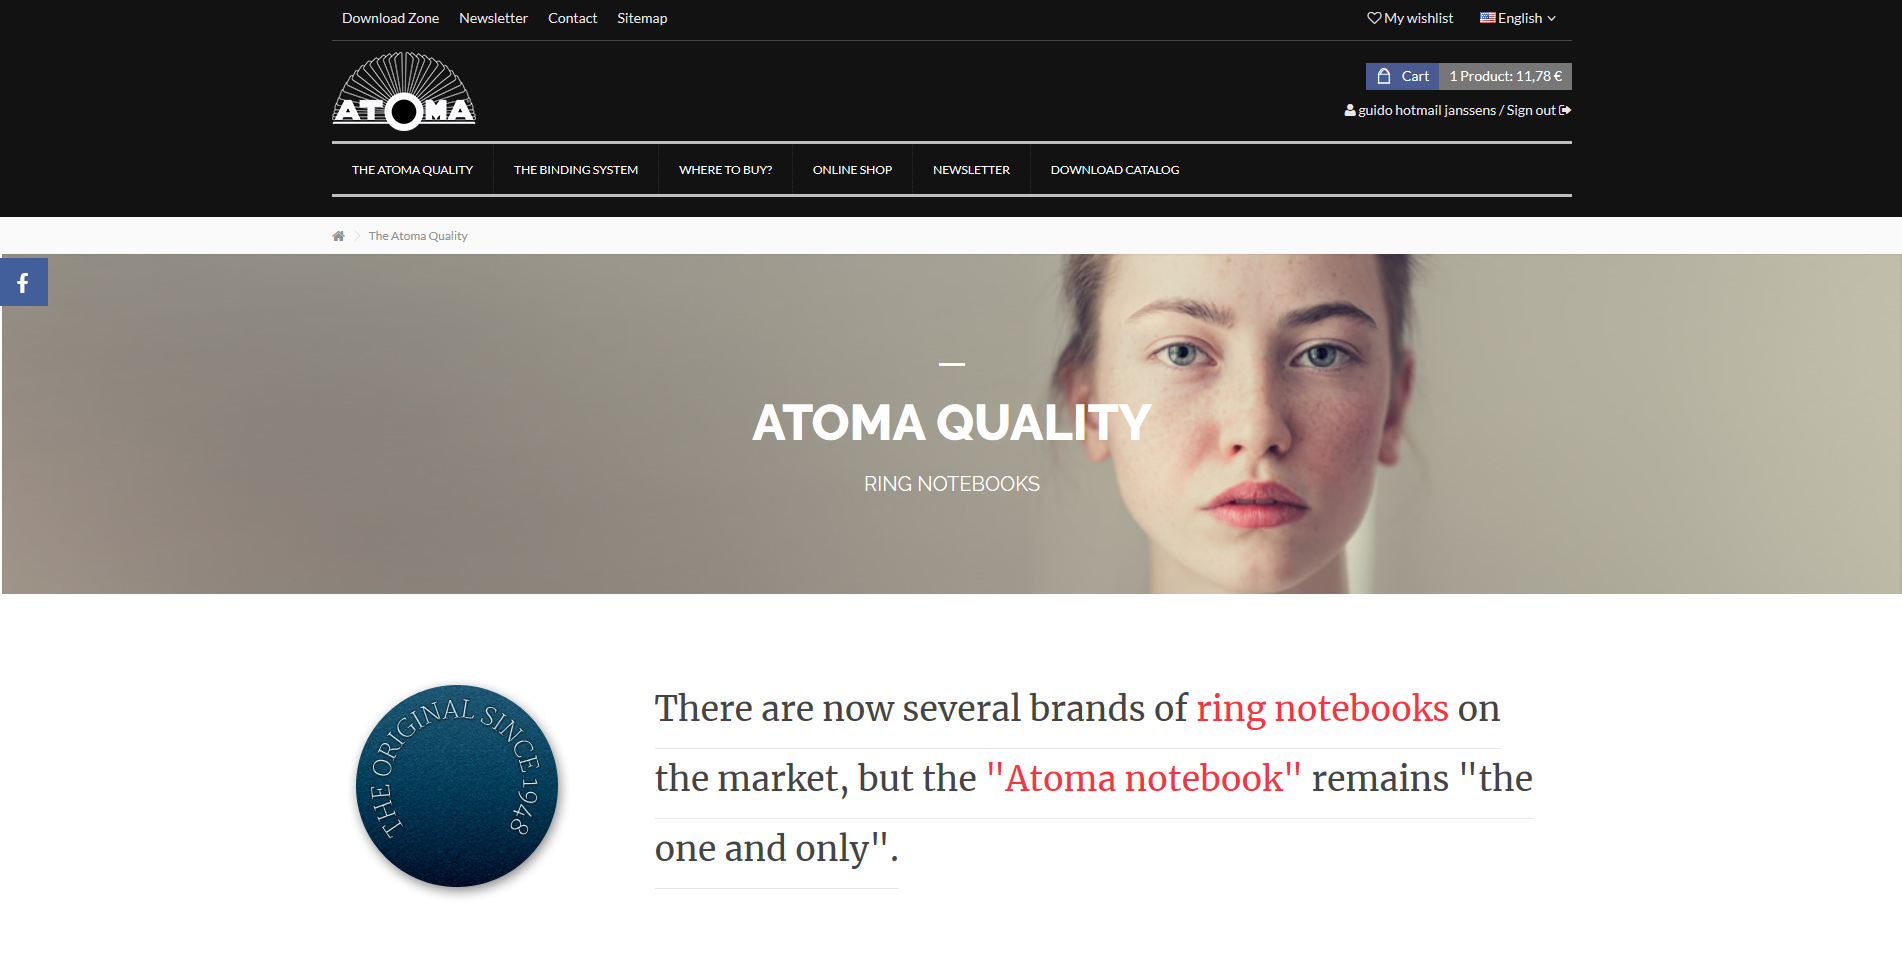 atoma e-commerce website